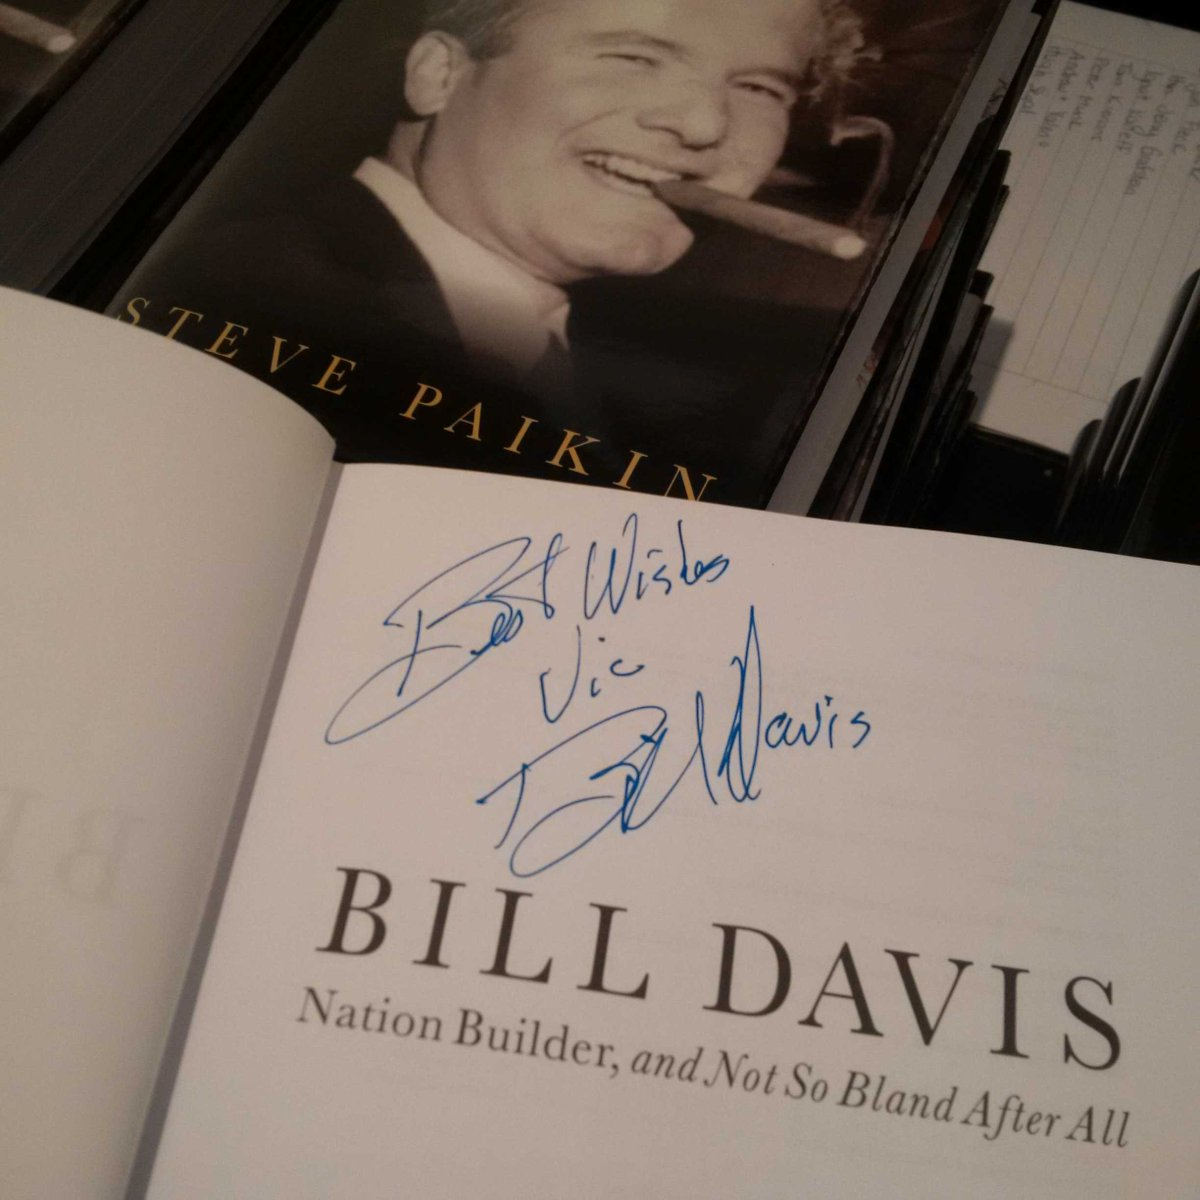 Nation Builder Bill Davis and Not So Bland After All